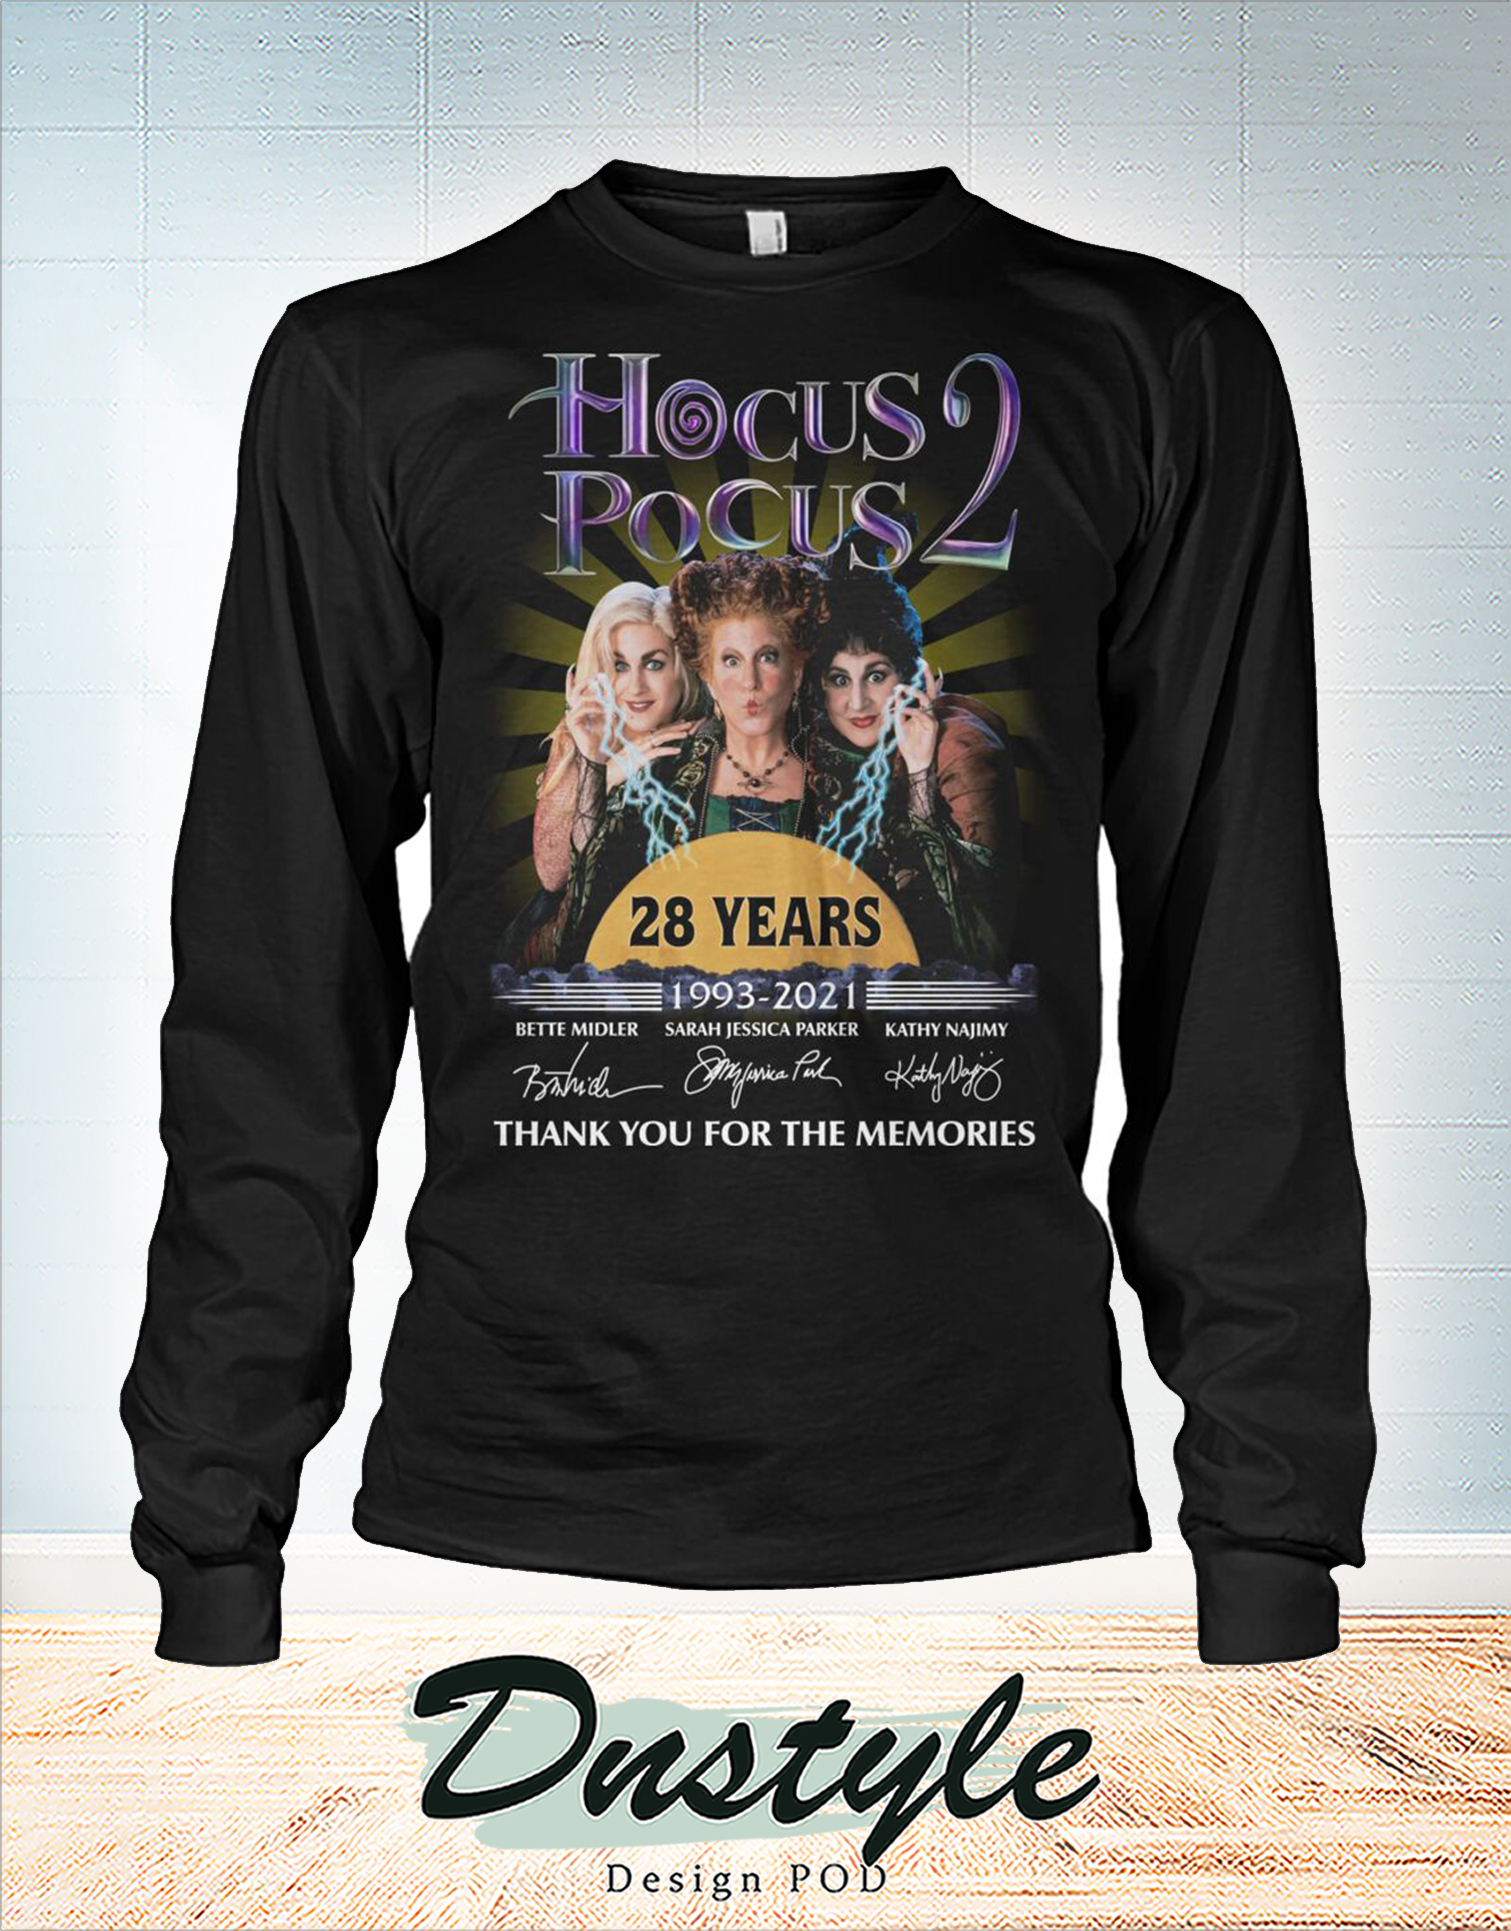 Hocus pocus 28 years thank you for the memories long sleeve